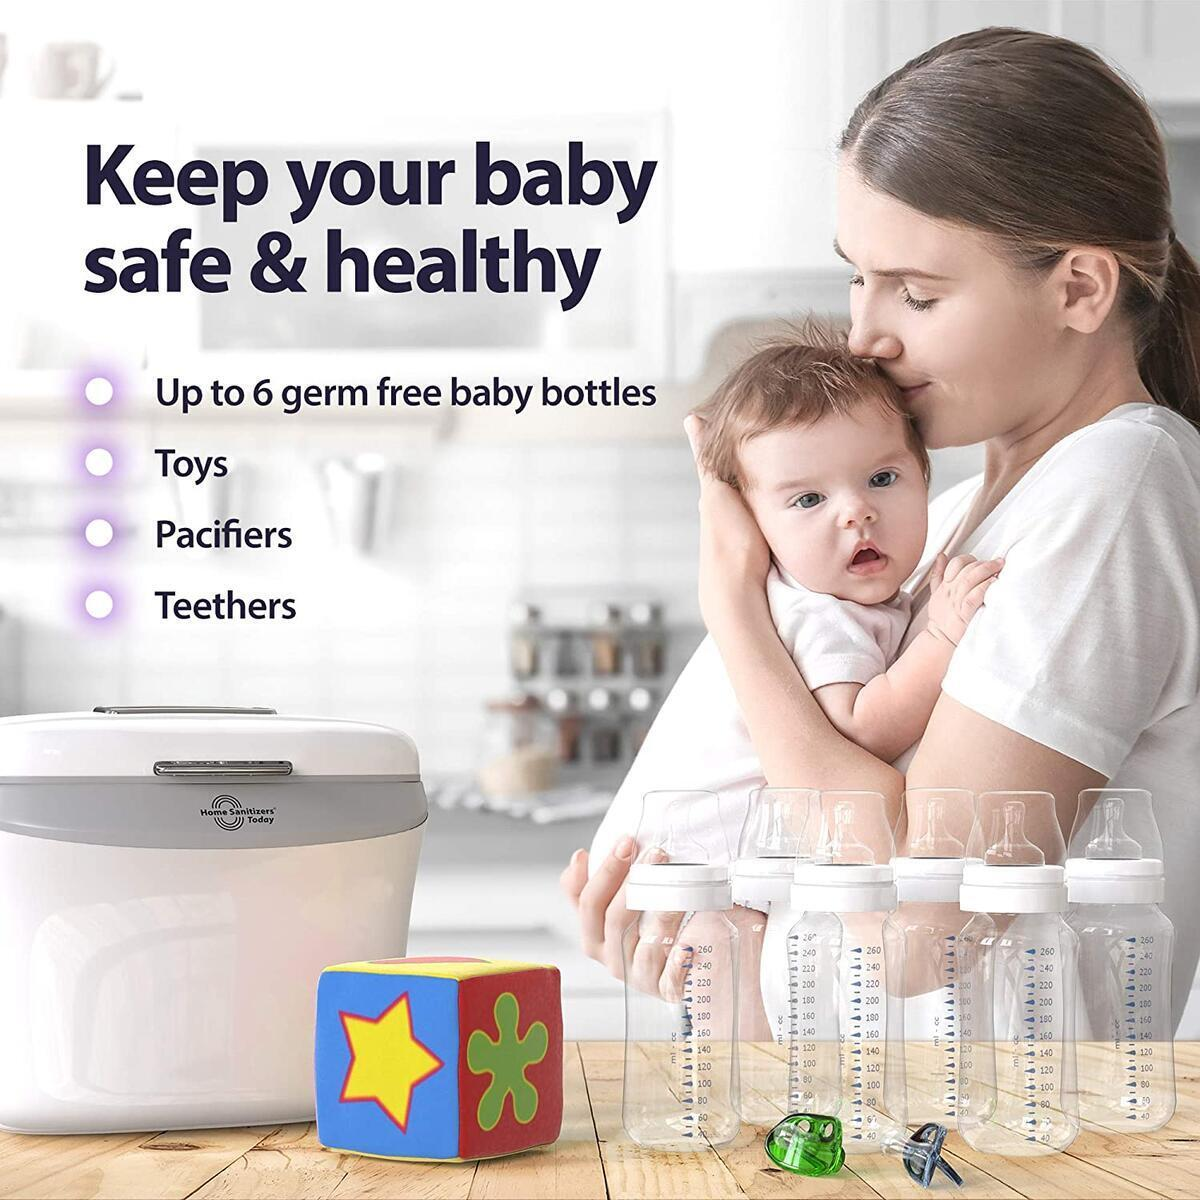 UV Light Sanitizer Box for Disinfection - Ultraviolet LED Universal Sterilizer and Dryer Device for Baby Bottles, Cell Phone, Toothbrush and Personal Items